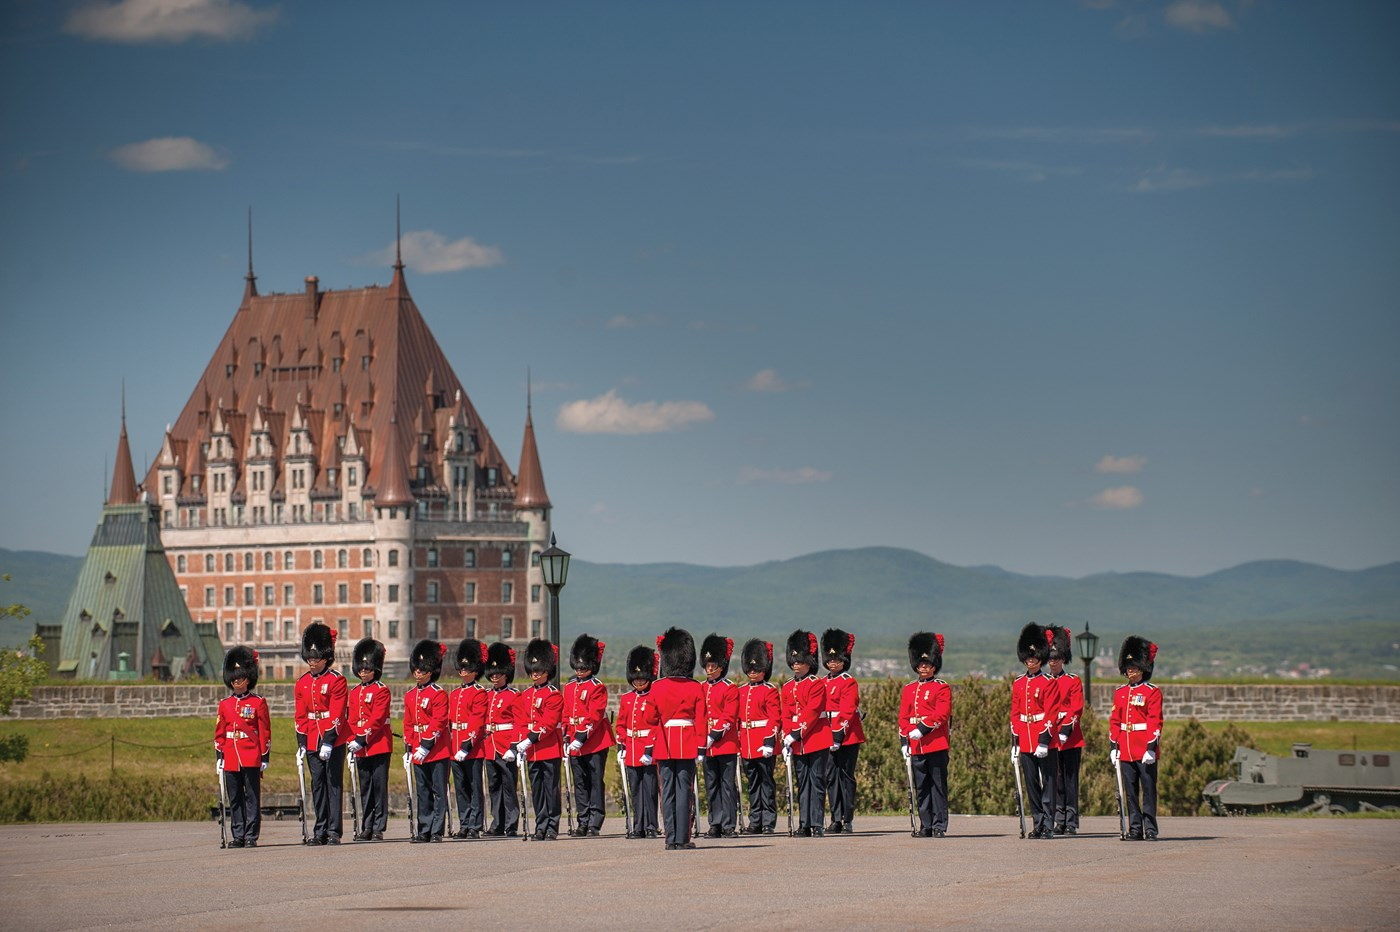 Changing Guard ceremony